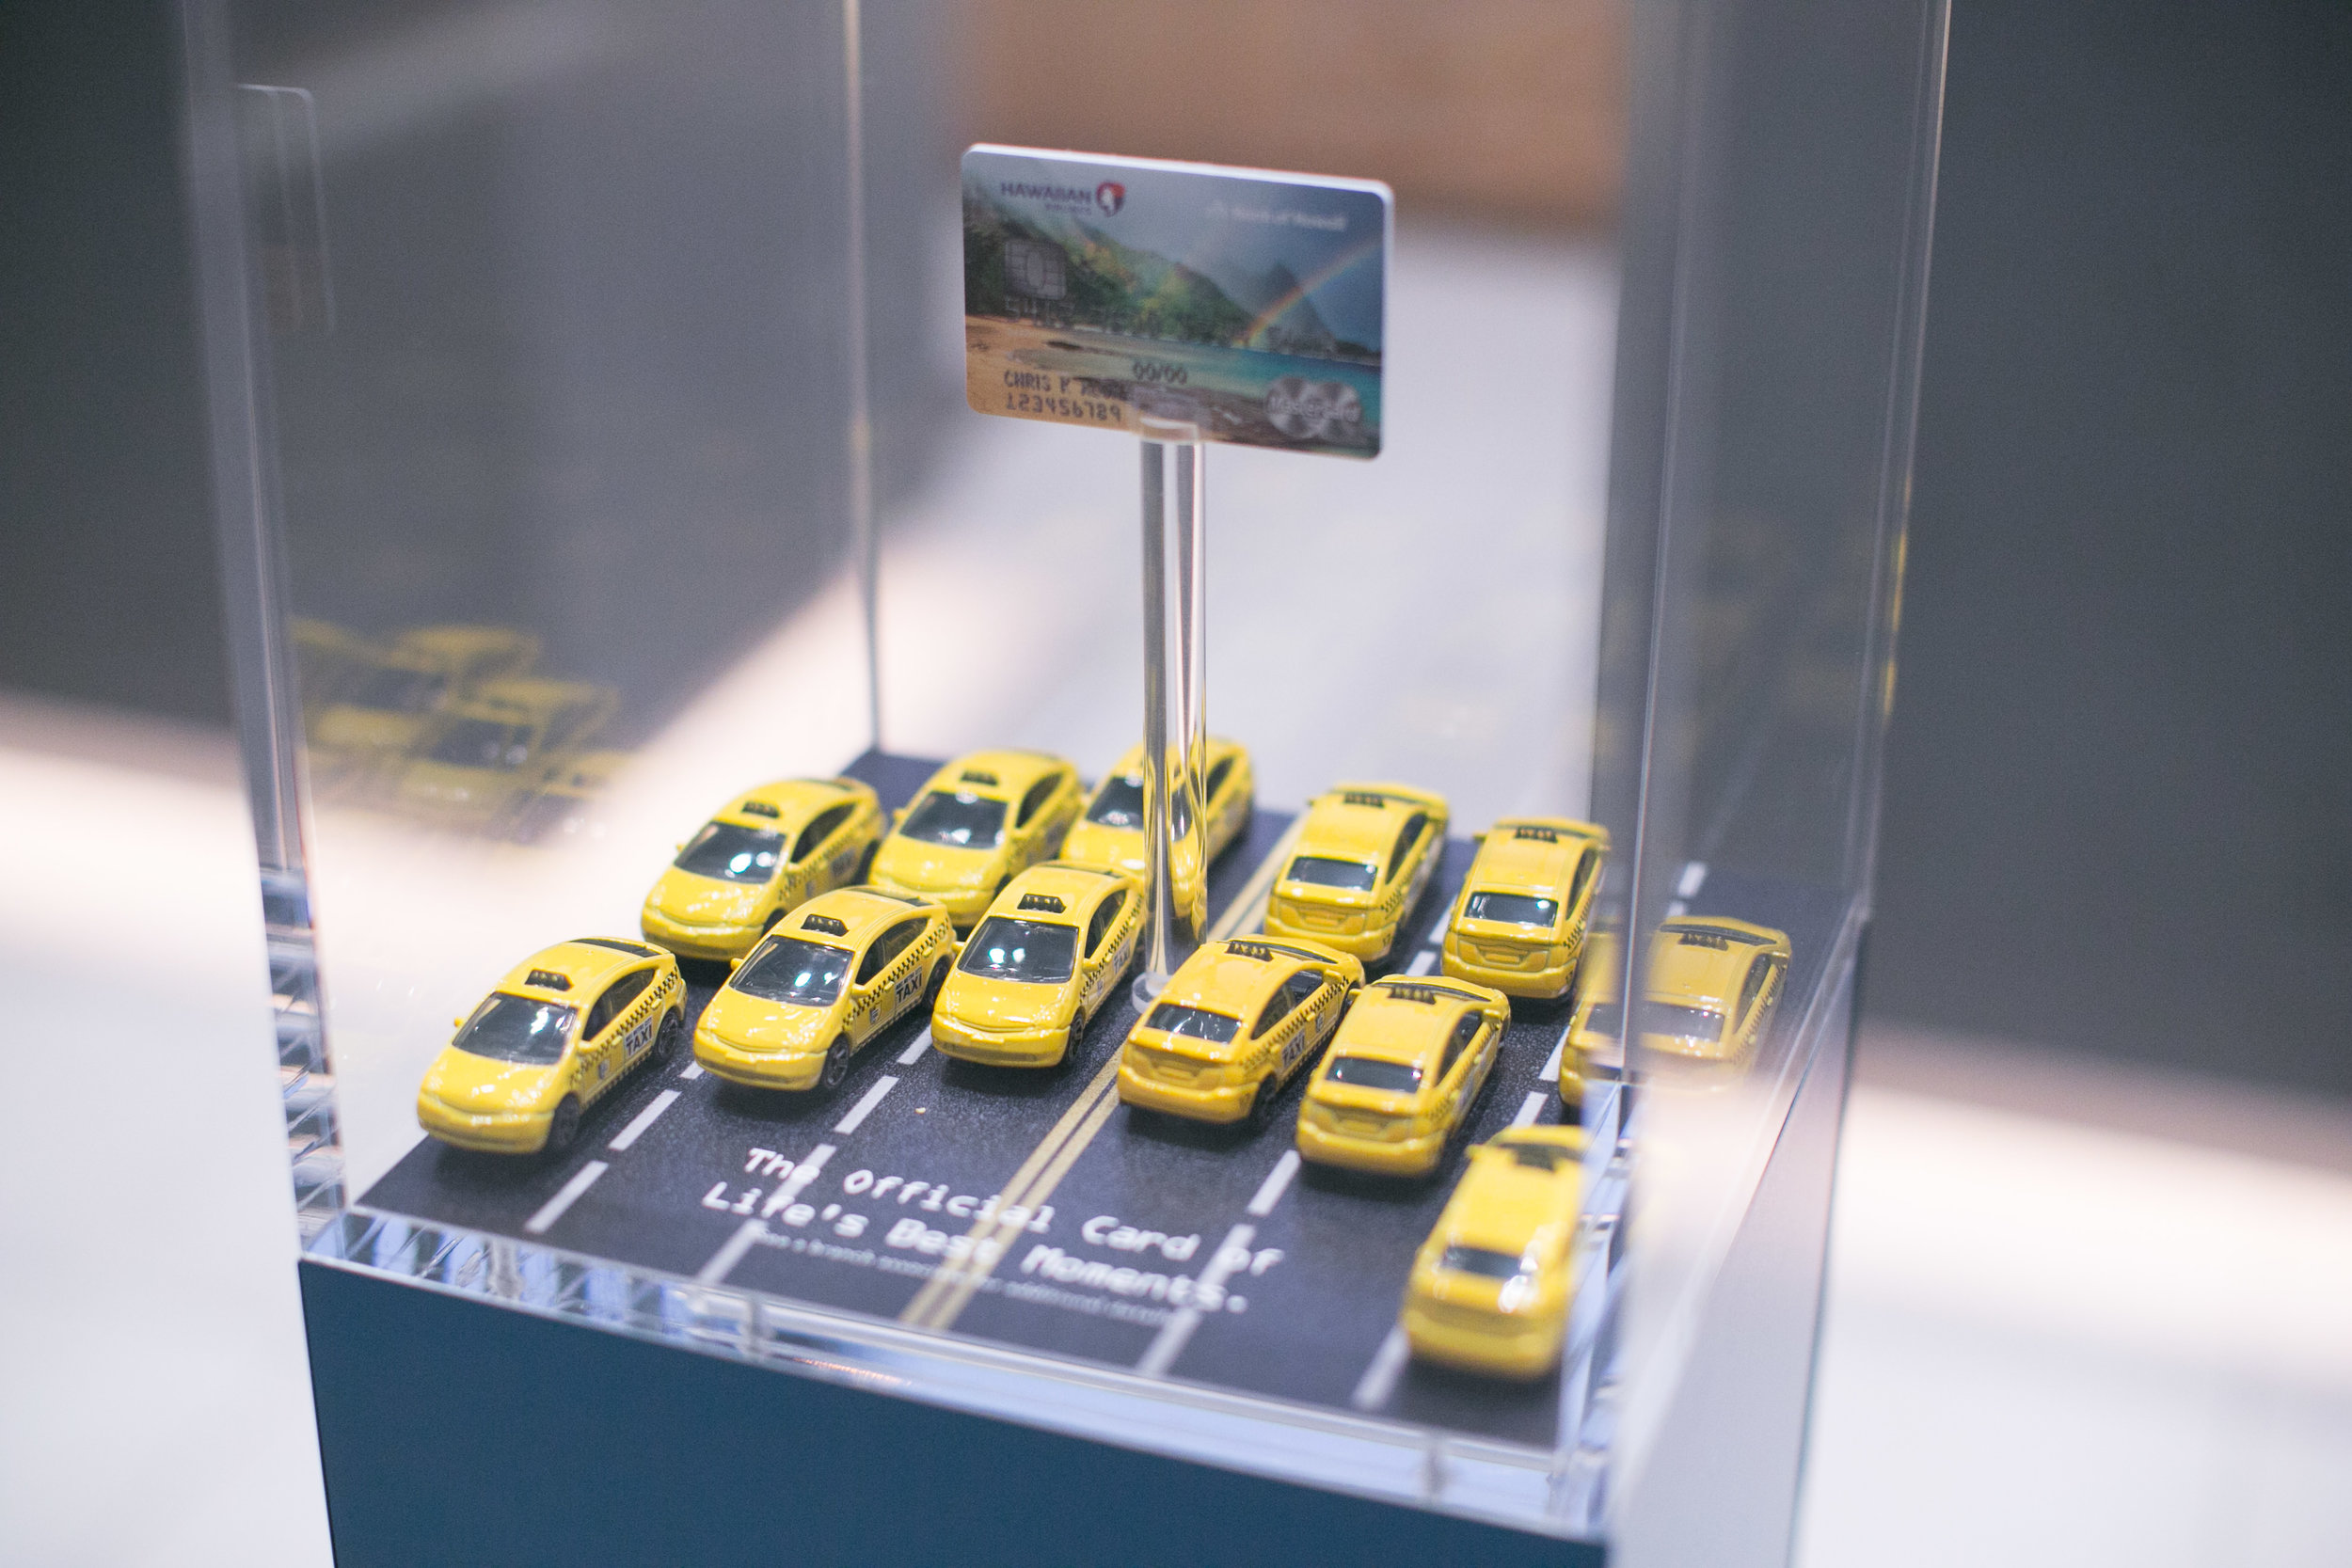 CURATE-BOH-Downtown-Display-Taxi.jpg